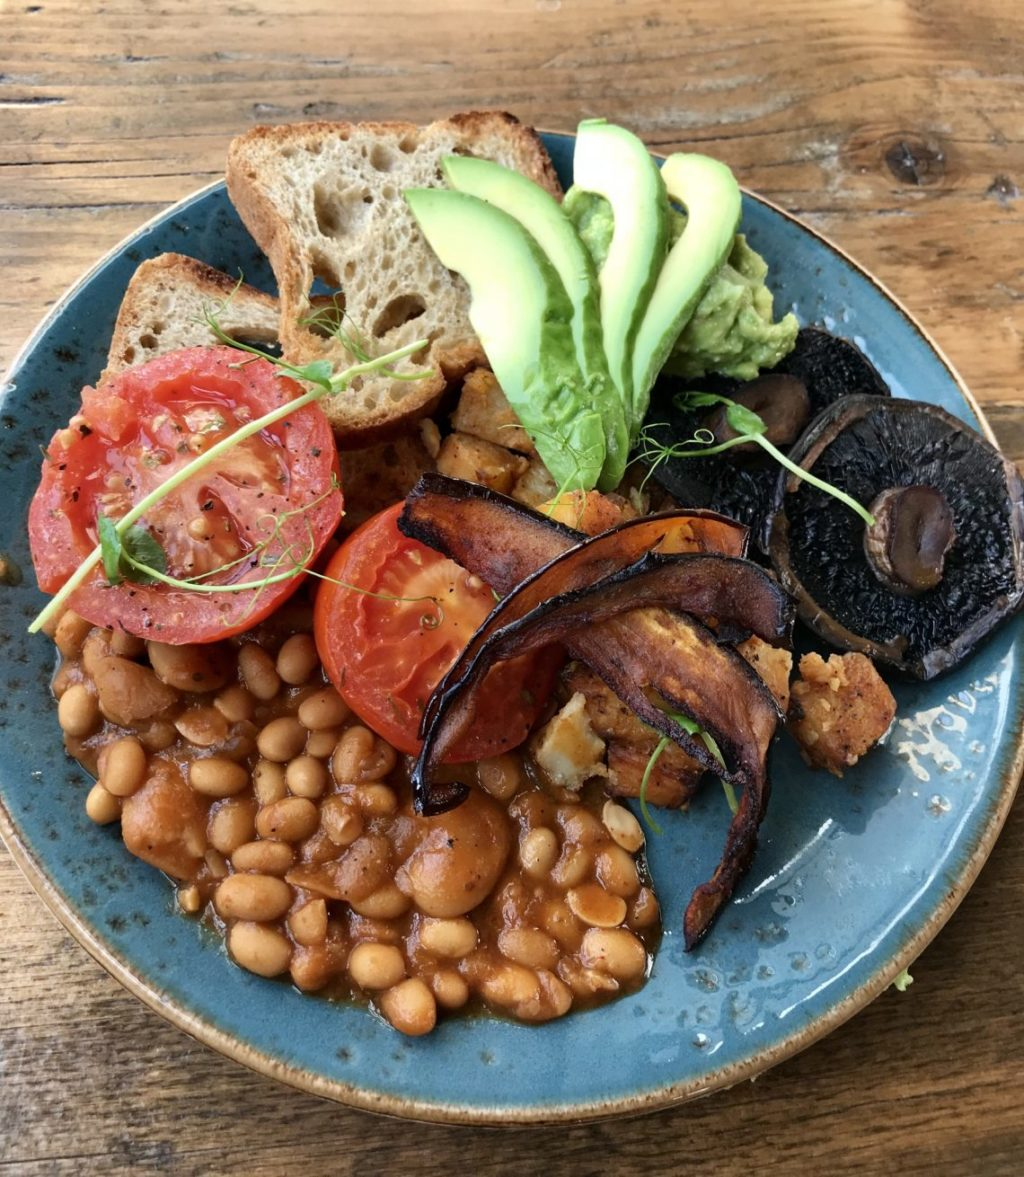 Vegan Brunch at Natural Healthy Foods Eatery| Birmingham